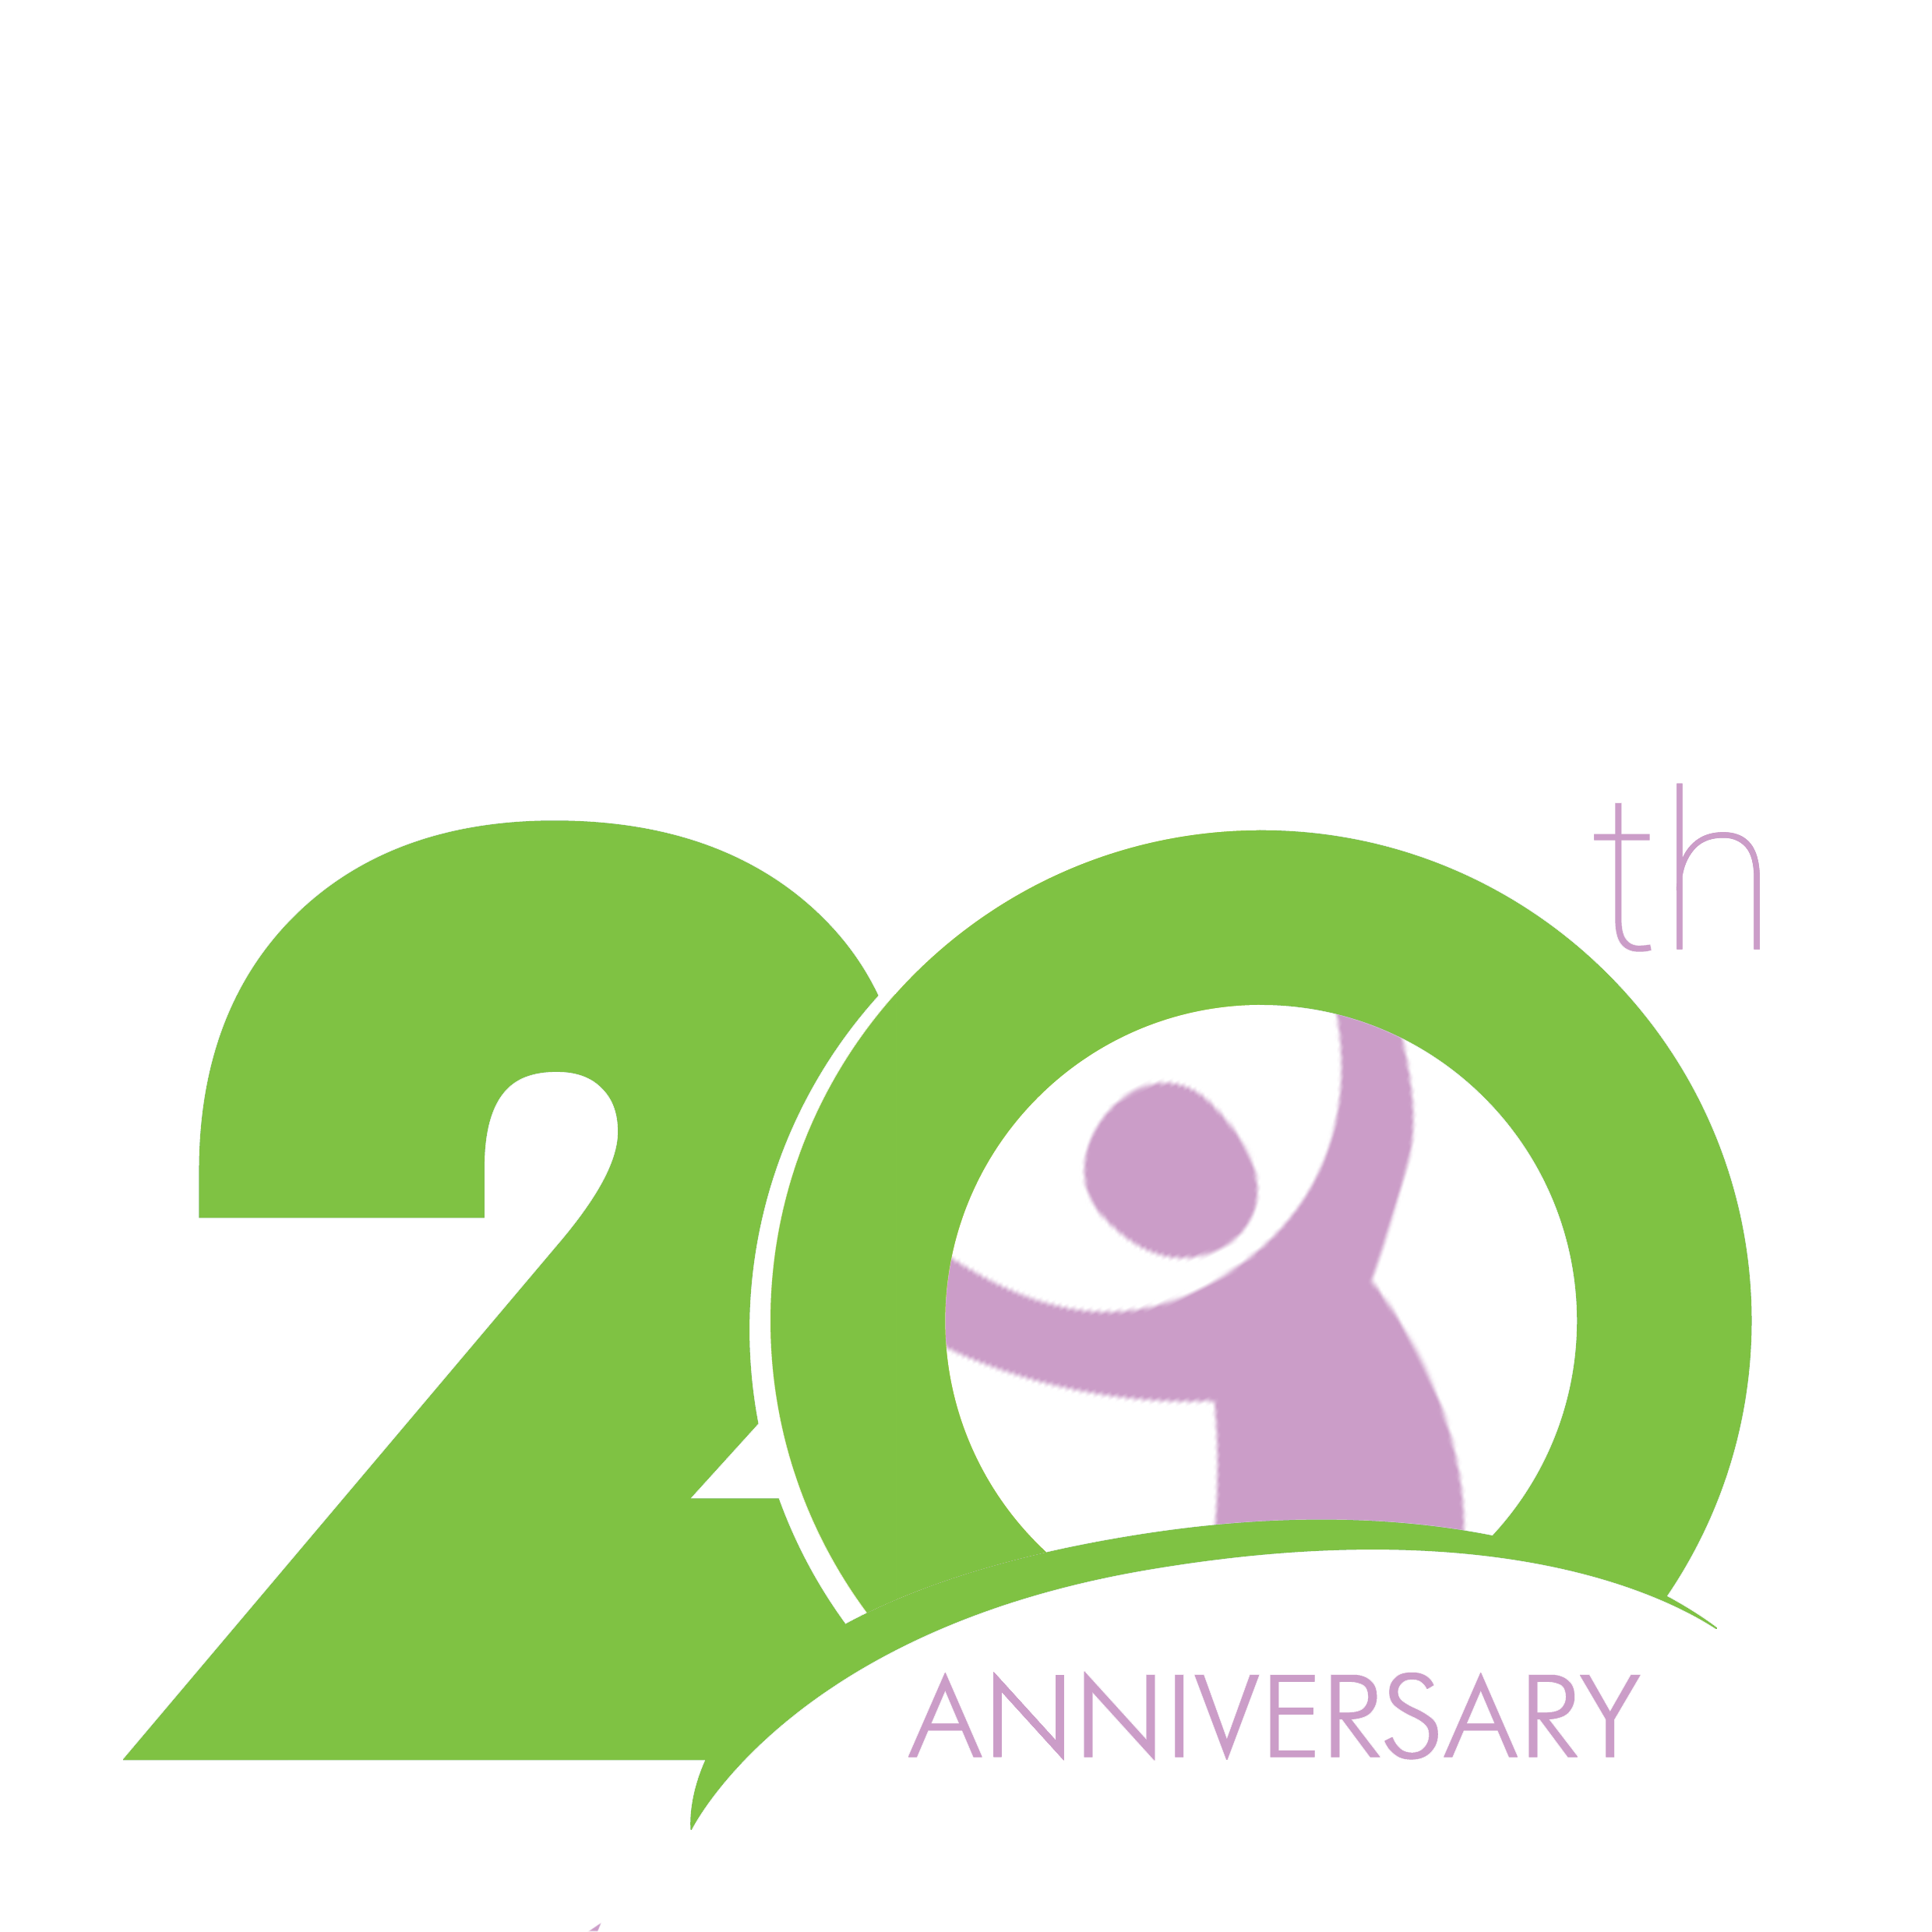 20-year anniversary logo with circle and child shape in the center